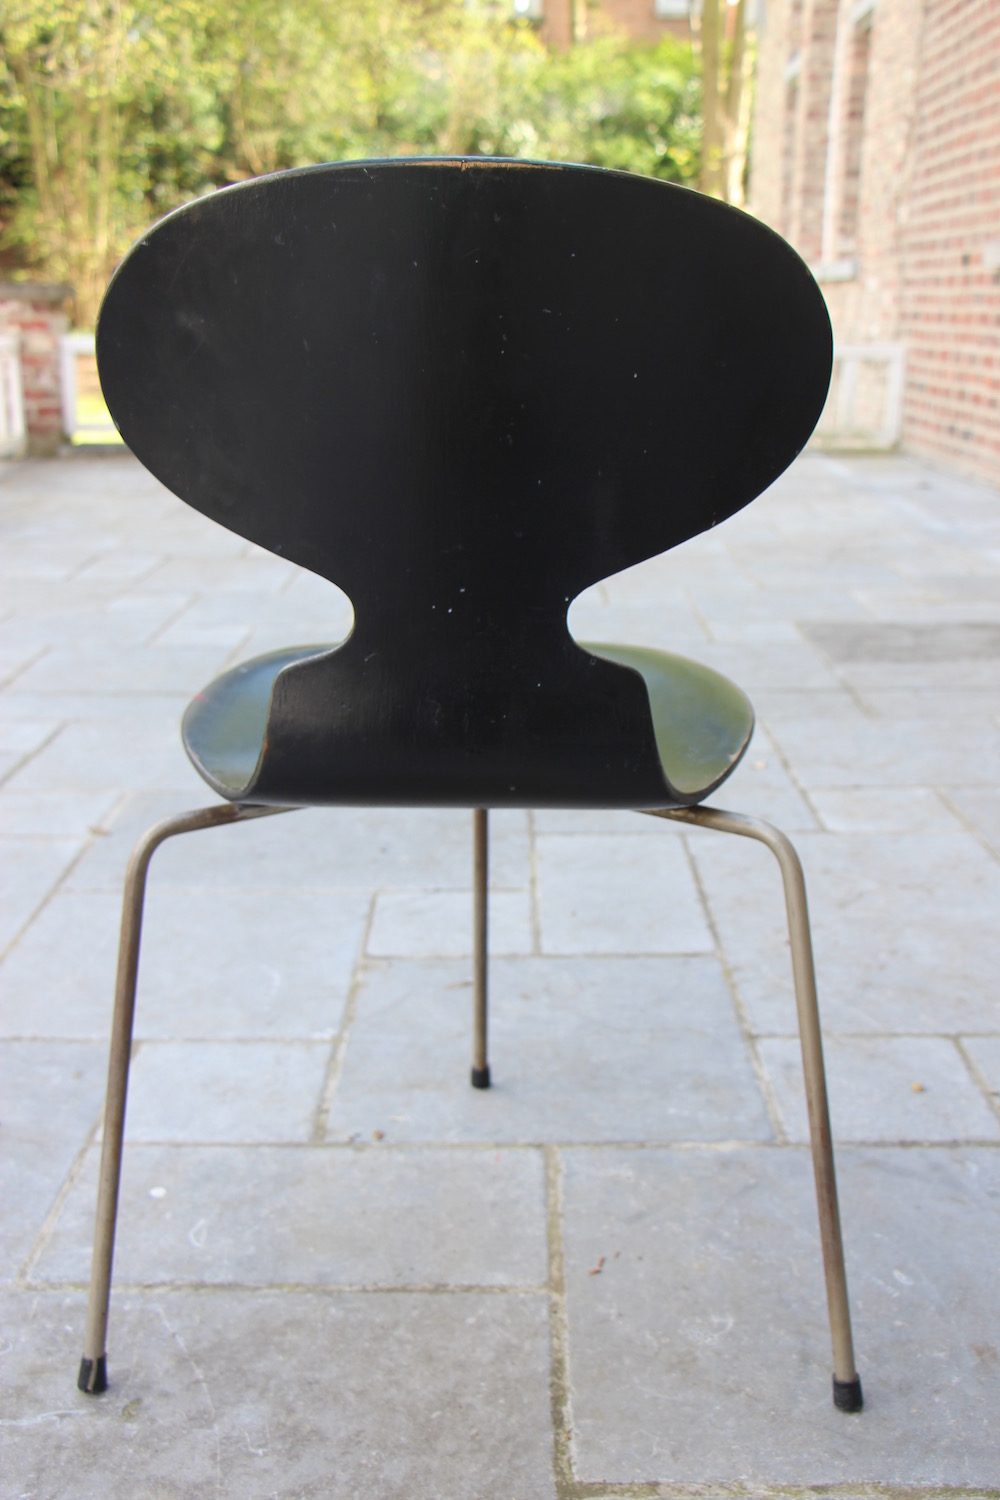 Vintage Ant chair by Arne Jacobsen for Fritz Hansen